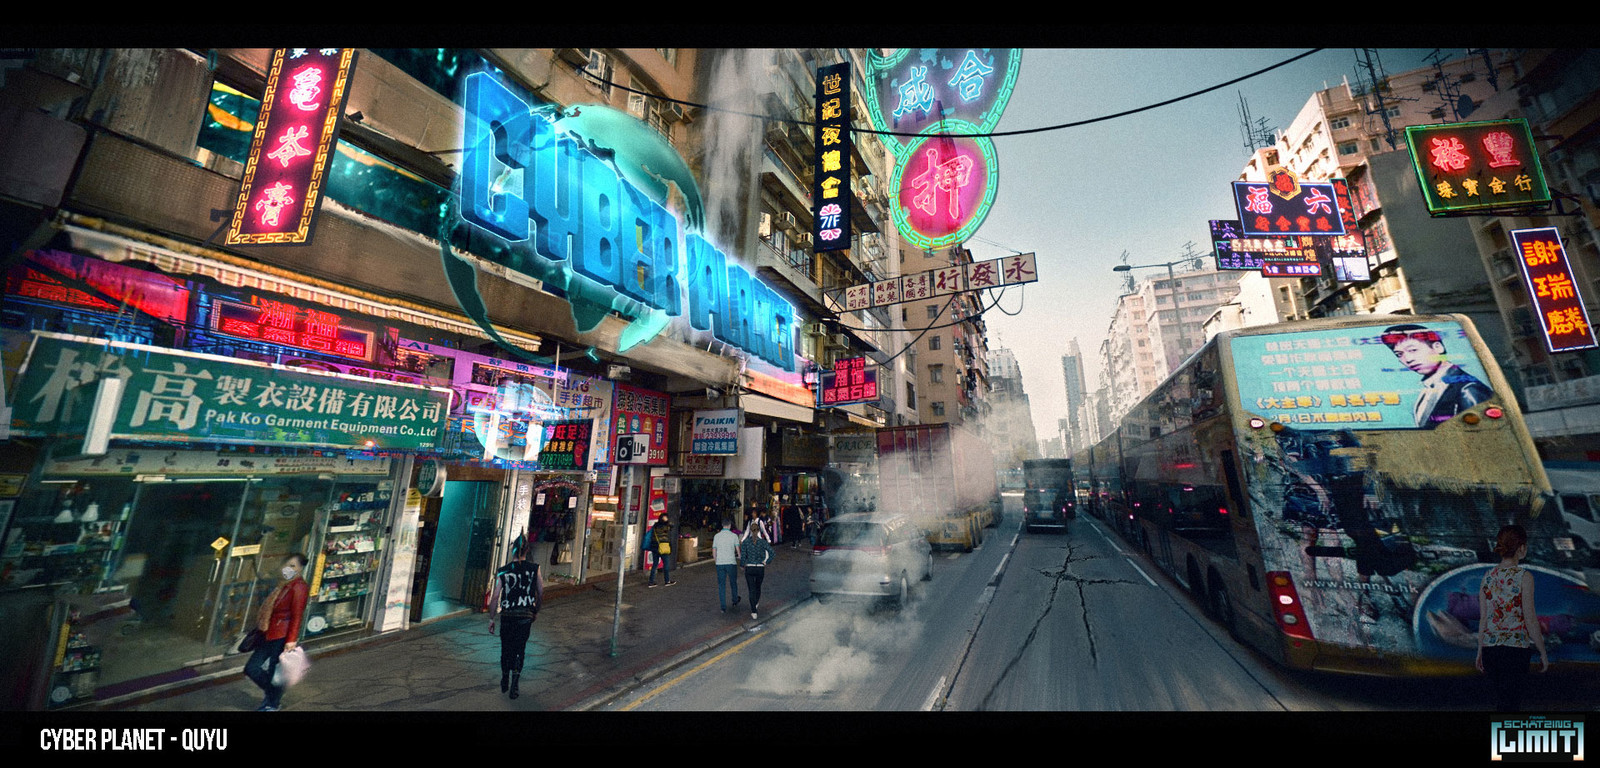 The Cyberplanet at the Quyu district